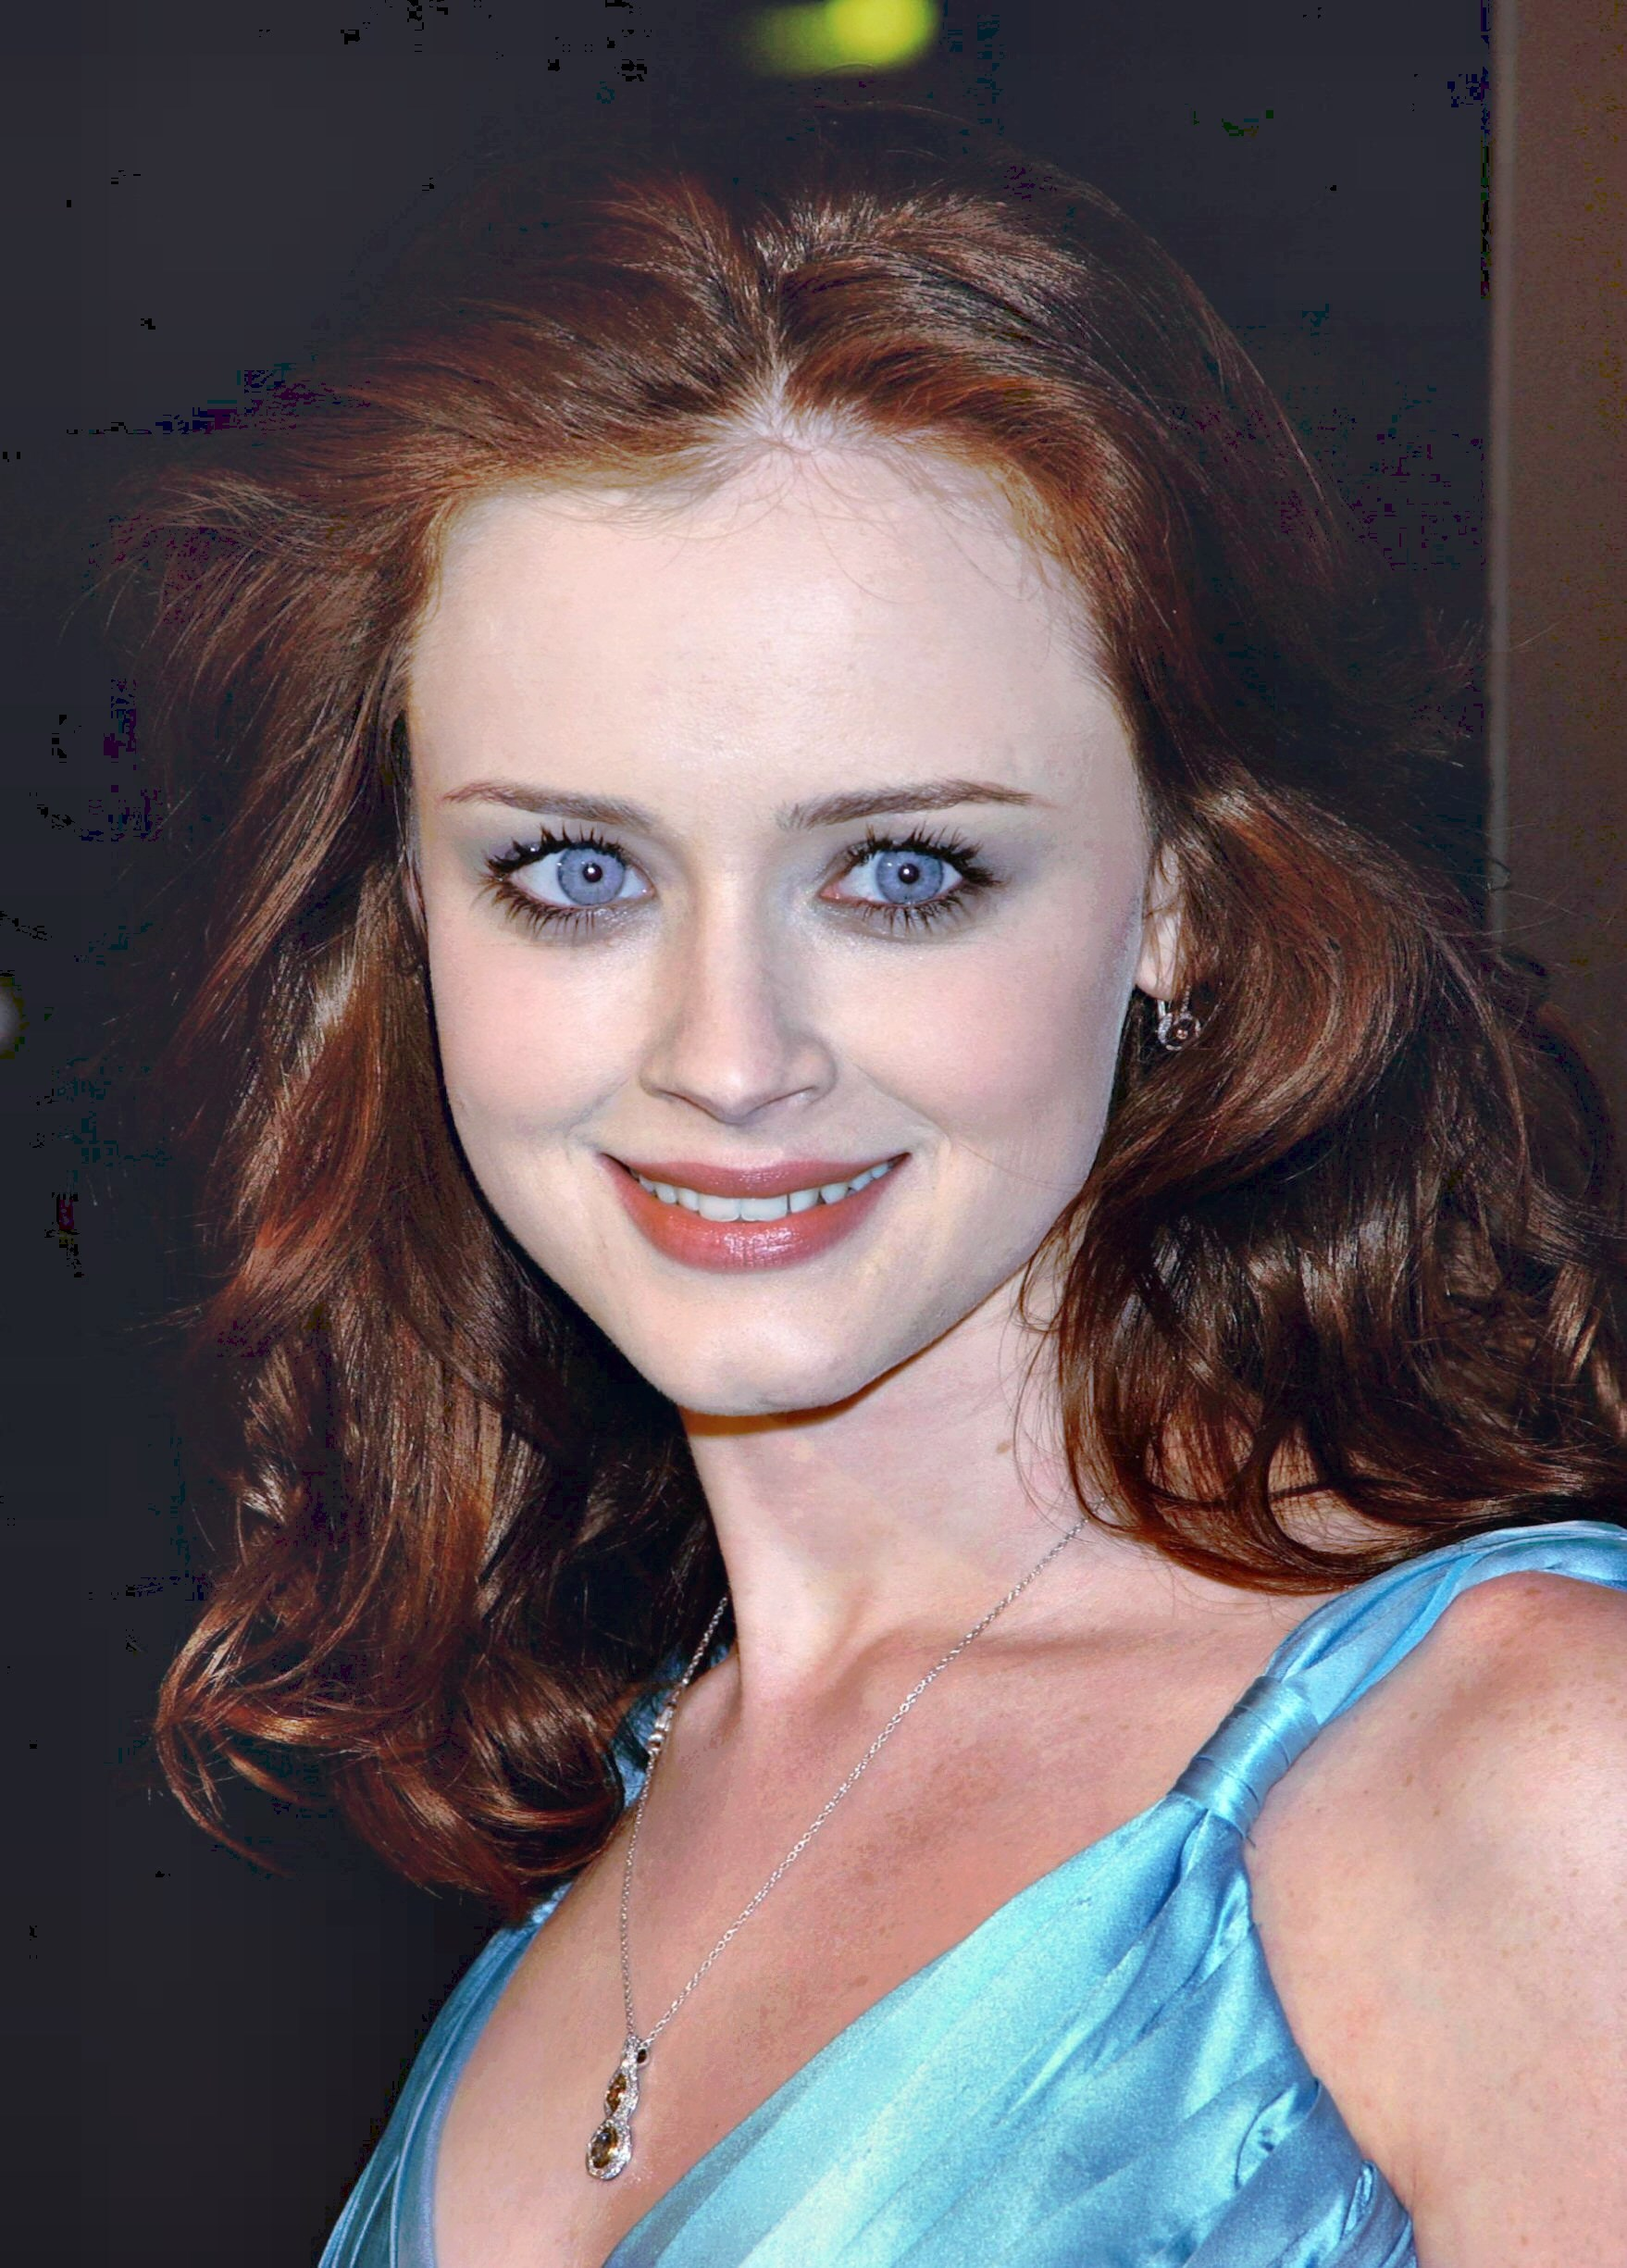 Alexis Bledel nudes (15 fotos), hacked Sideboobs, Instagram, swimsuit 2015